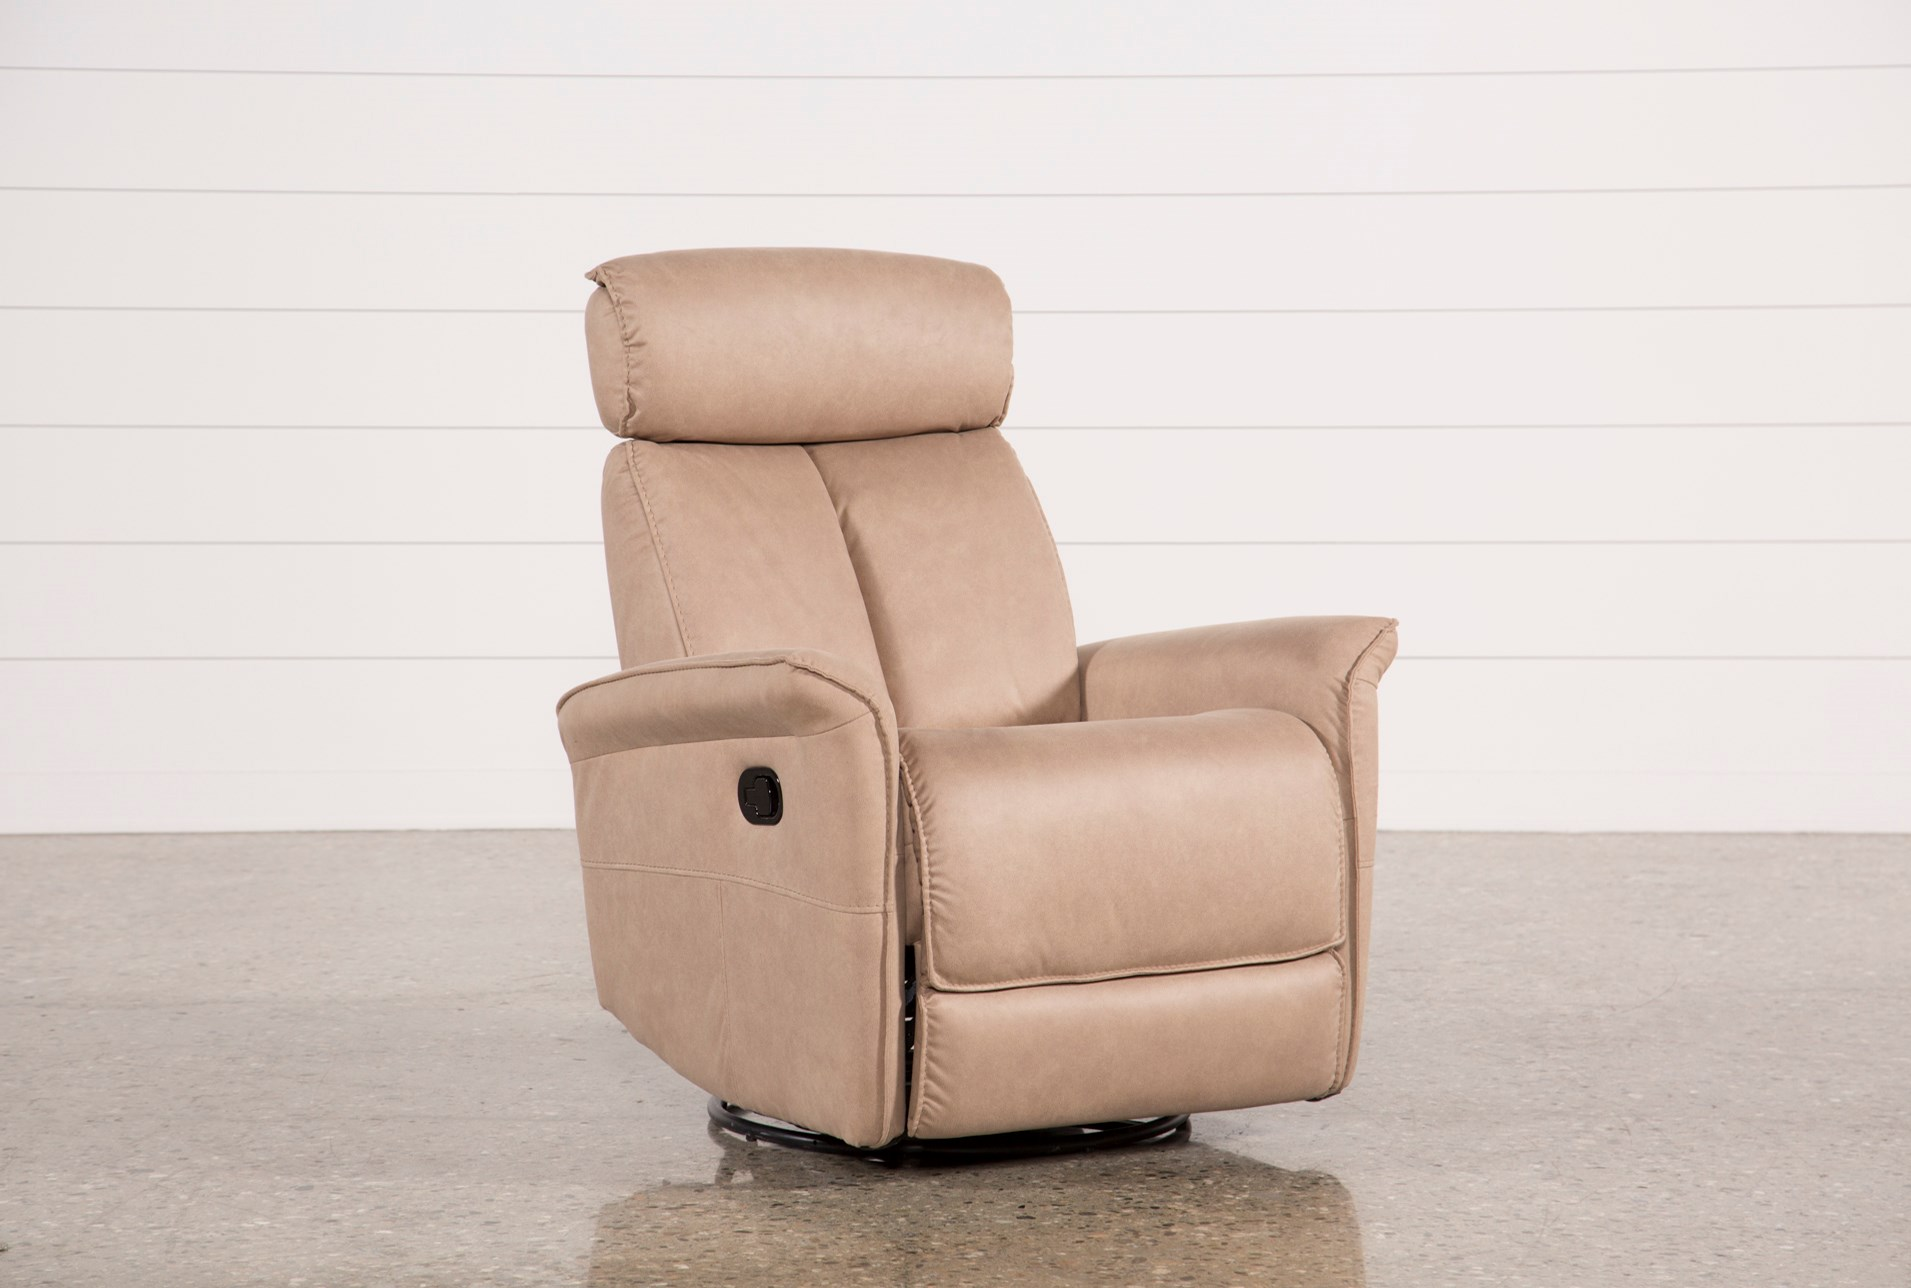 apply specs does mac glider recline ottoman itm motion not swing recliner leather chair swivel